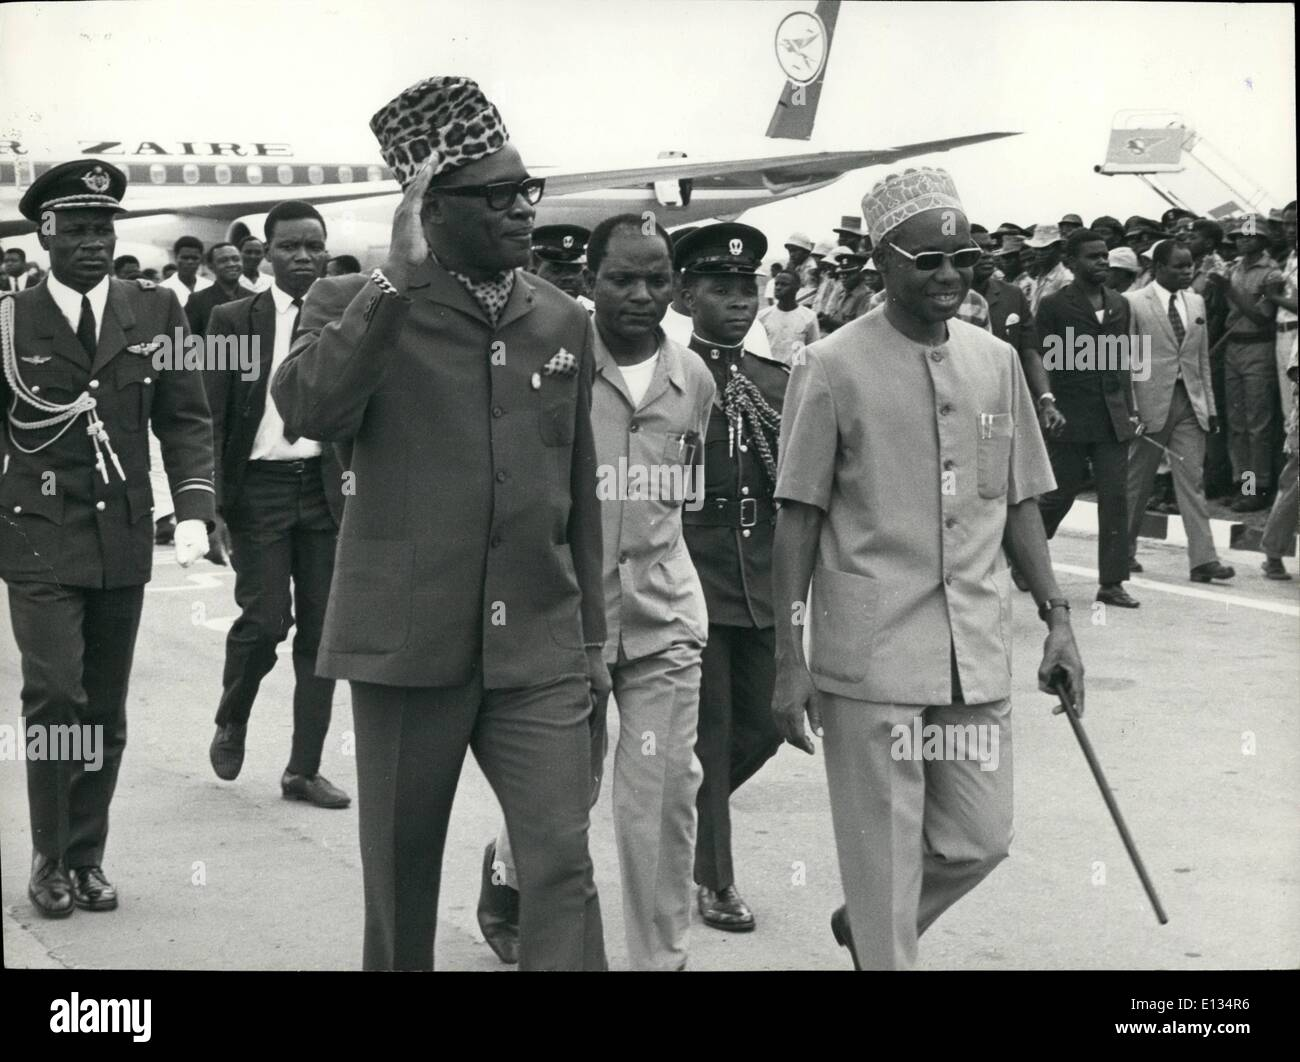 Feb. 26, 2012 - Zaire President Mobutui Sese Seko L , on visit to Tanzania, with President Nyerere. - Stock Image